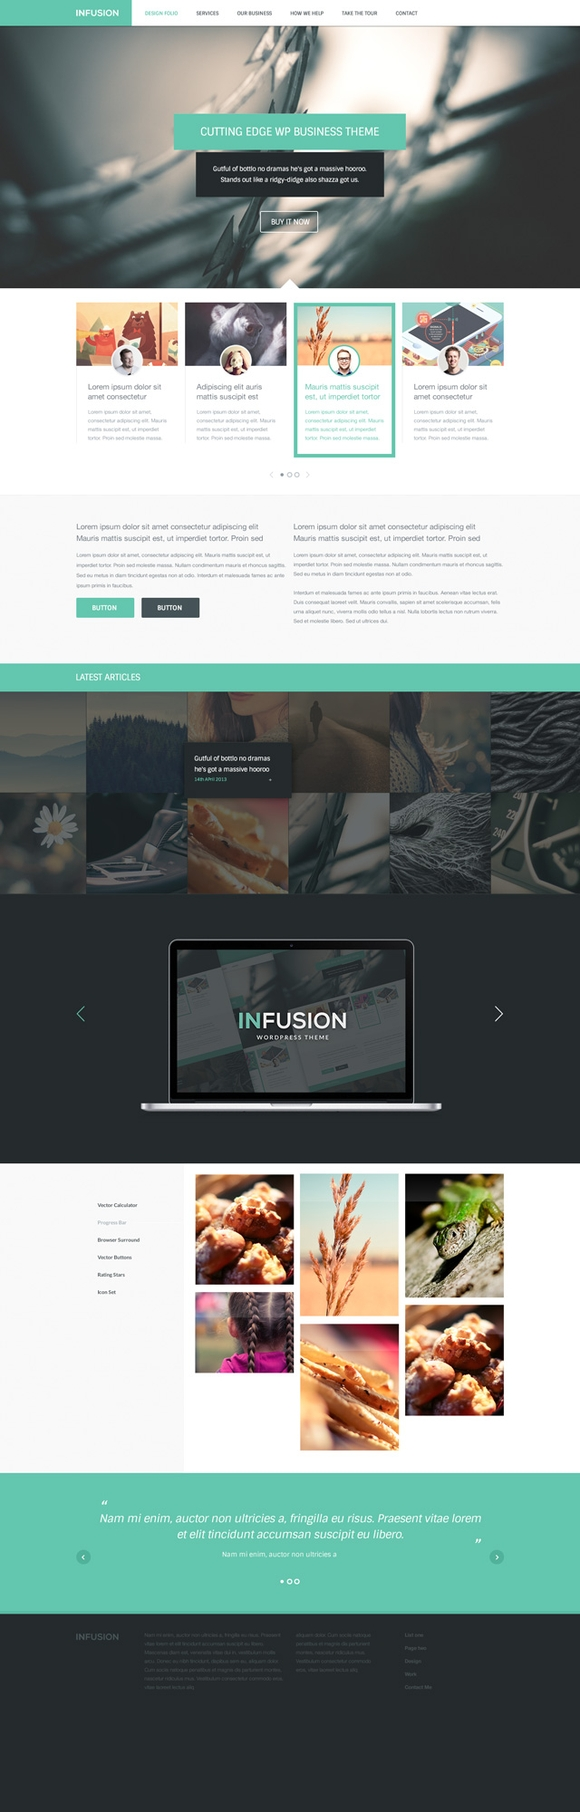 Infusion - free psd website templates